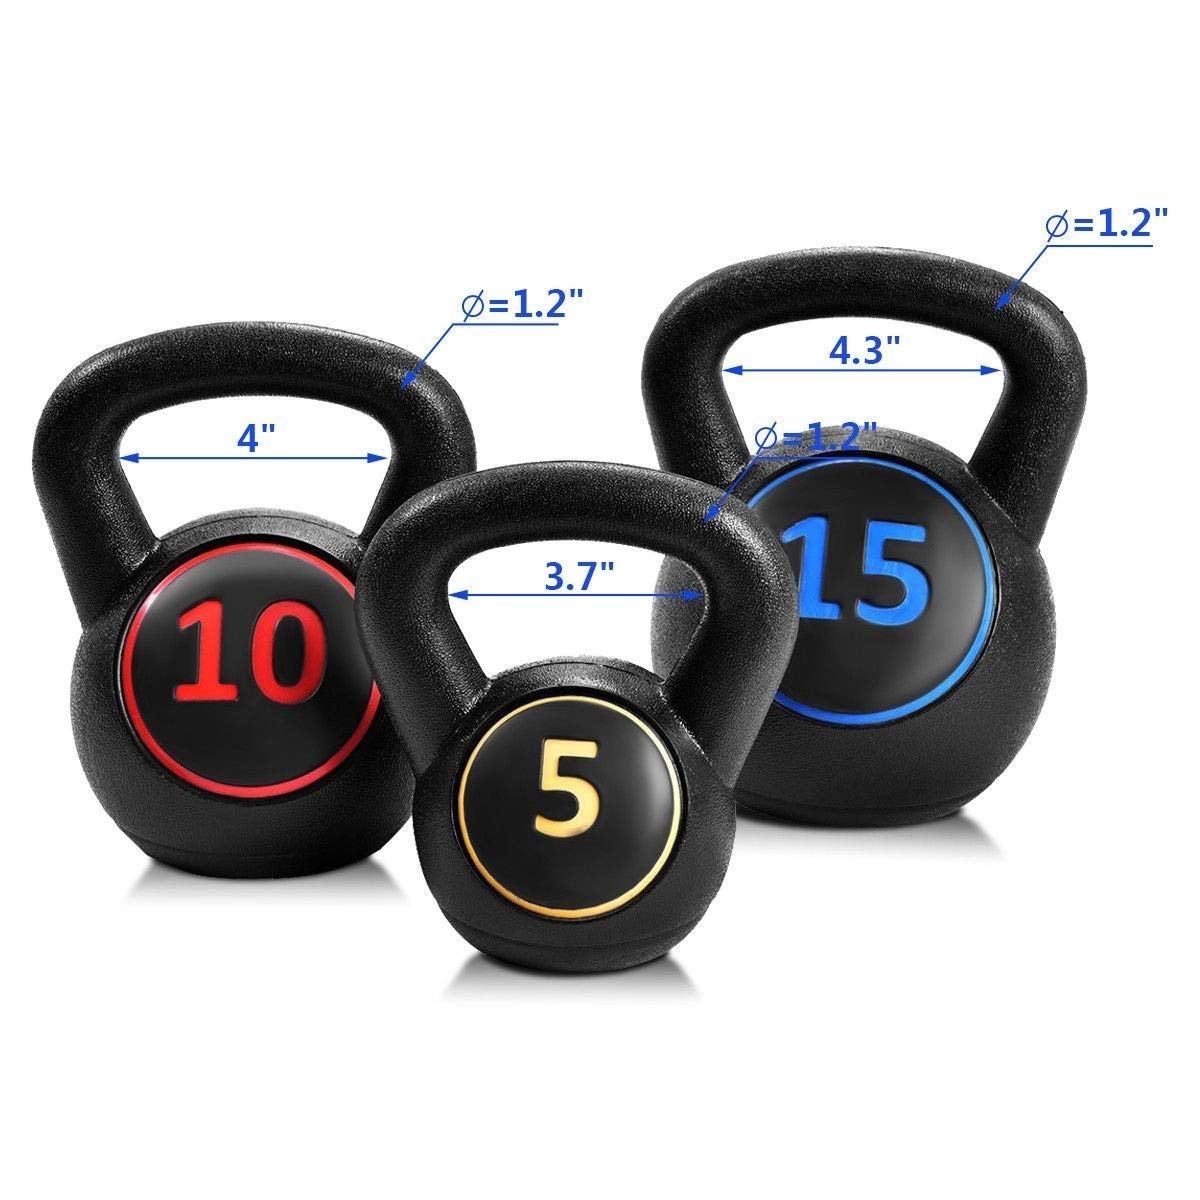 MD Group 3 pcs 5 10 15lbs Kettlebell Kettle Bell Weight Set by MD Group (Image #5)